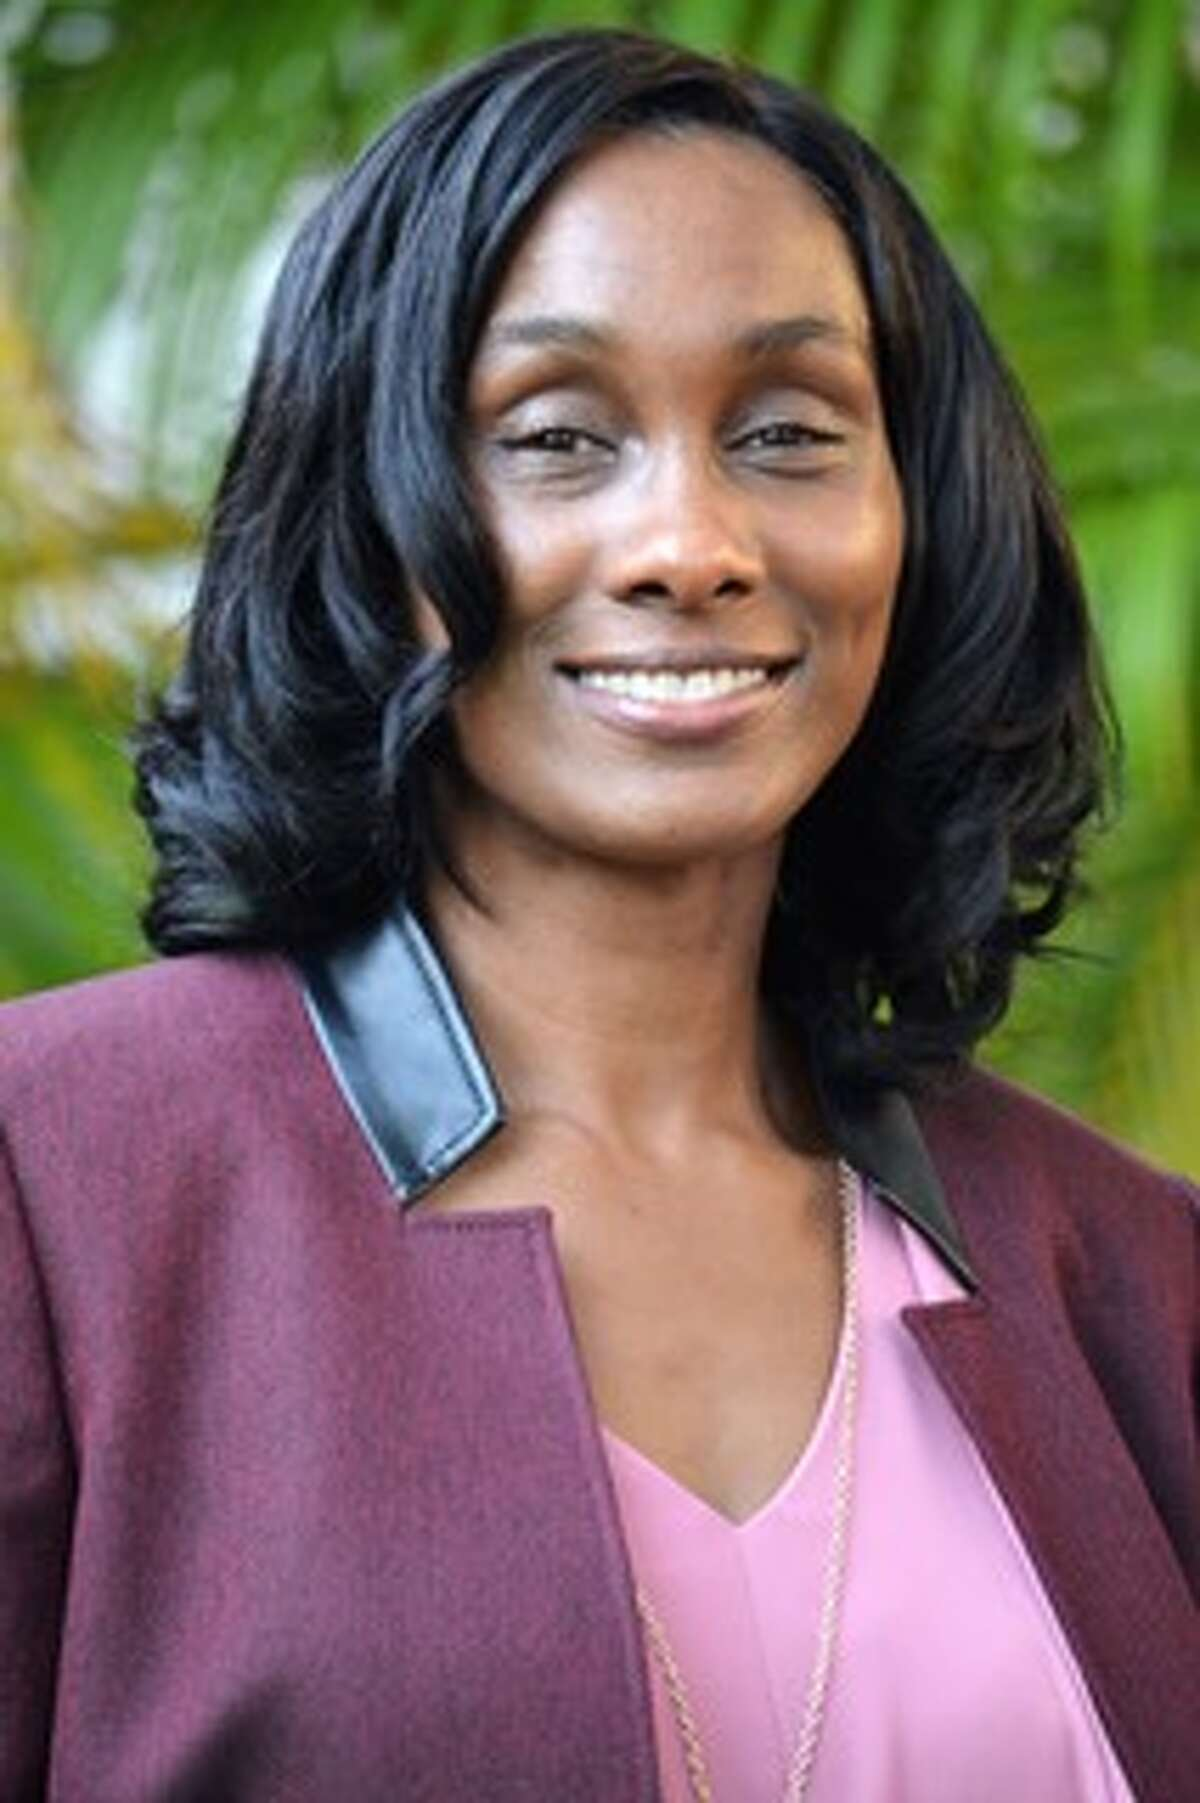 LaVonda Collins is one of seven Democrats seeking three Albany city judge seats in the Sept. 12 race (Provided)